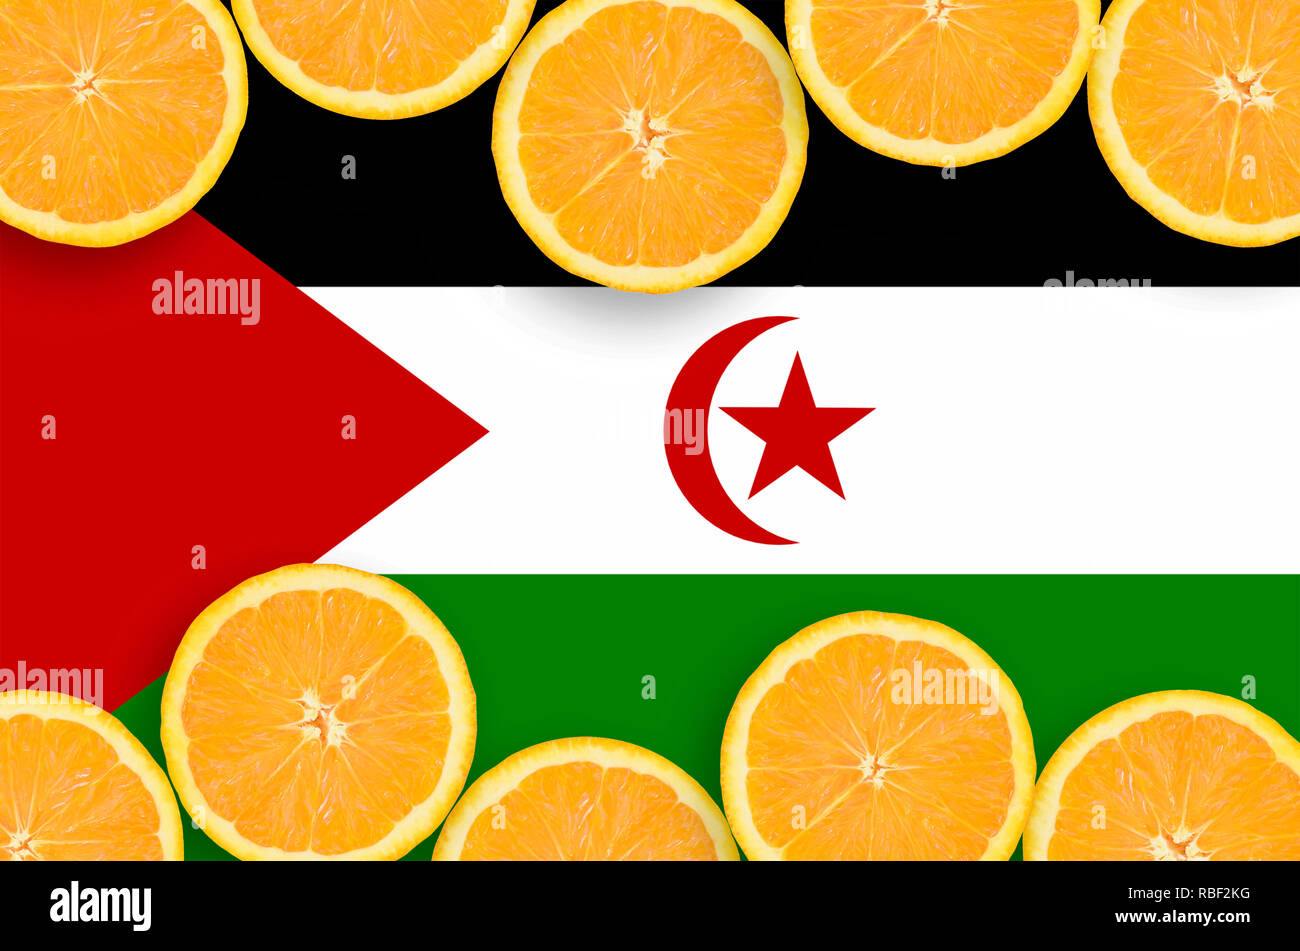 Western Sahara flag  in horizontal frame of orange citrus fruit slices. Concept of growing as well as import and export of citrus fruits - Stock Image